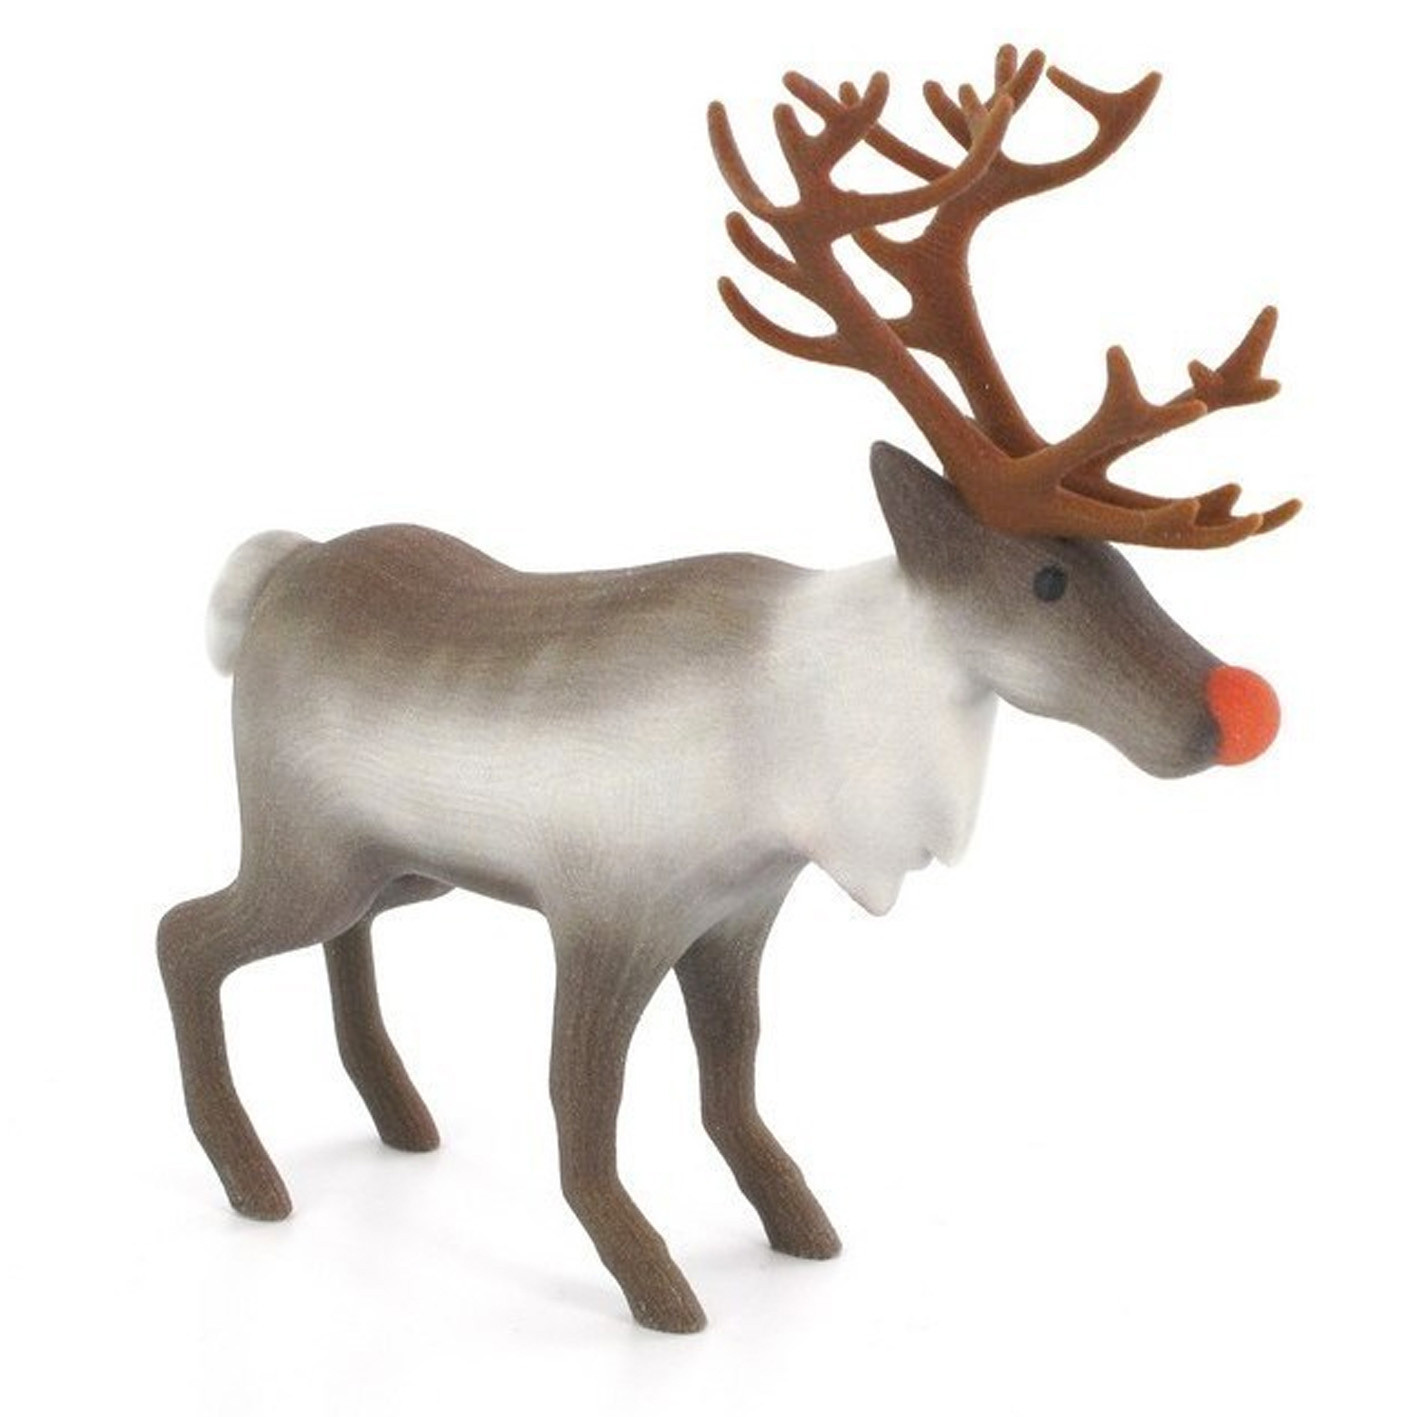 1.jpg Download free STL file Reindeer • Template to 3D print, CreativeTools